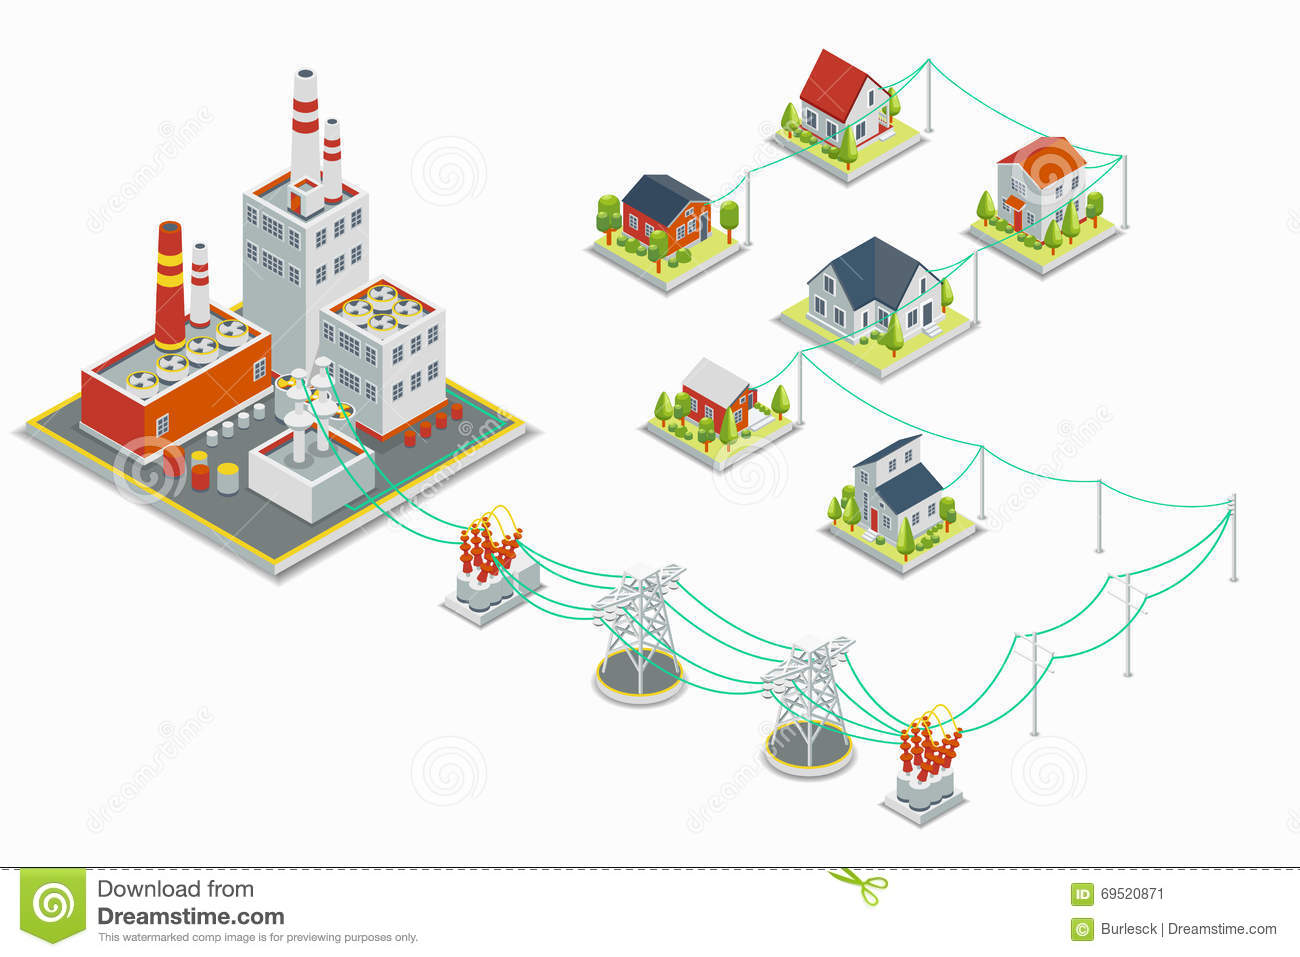 Reference Network Development Concept for the Malaysian Power Distribution System